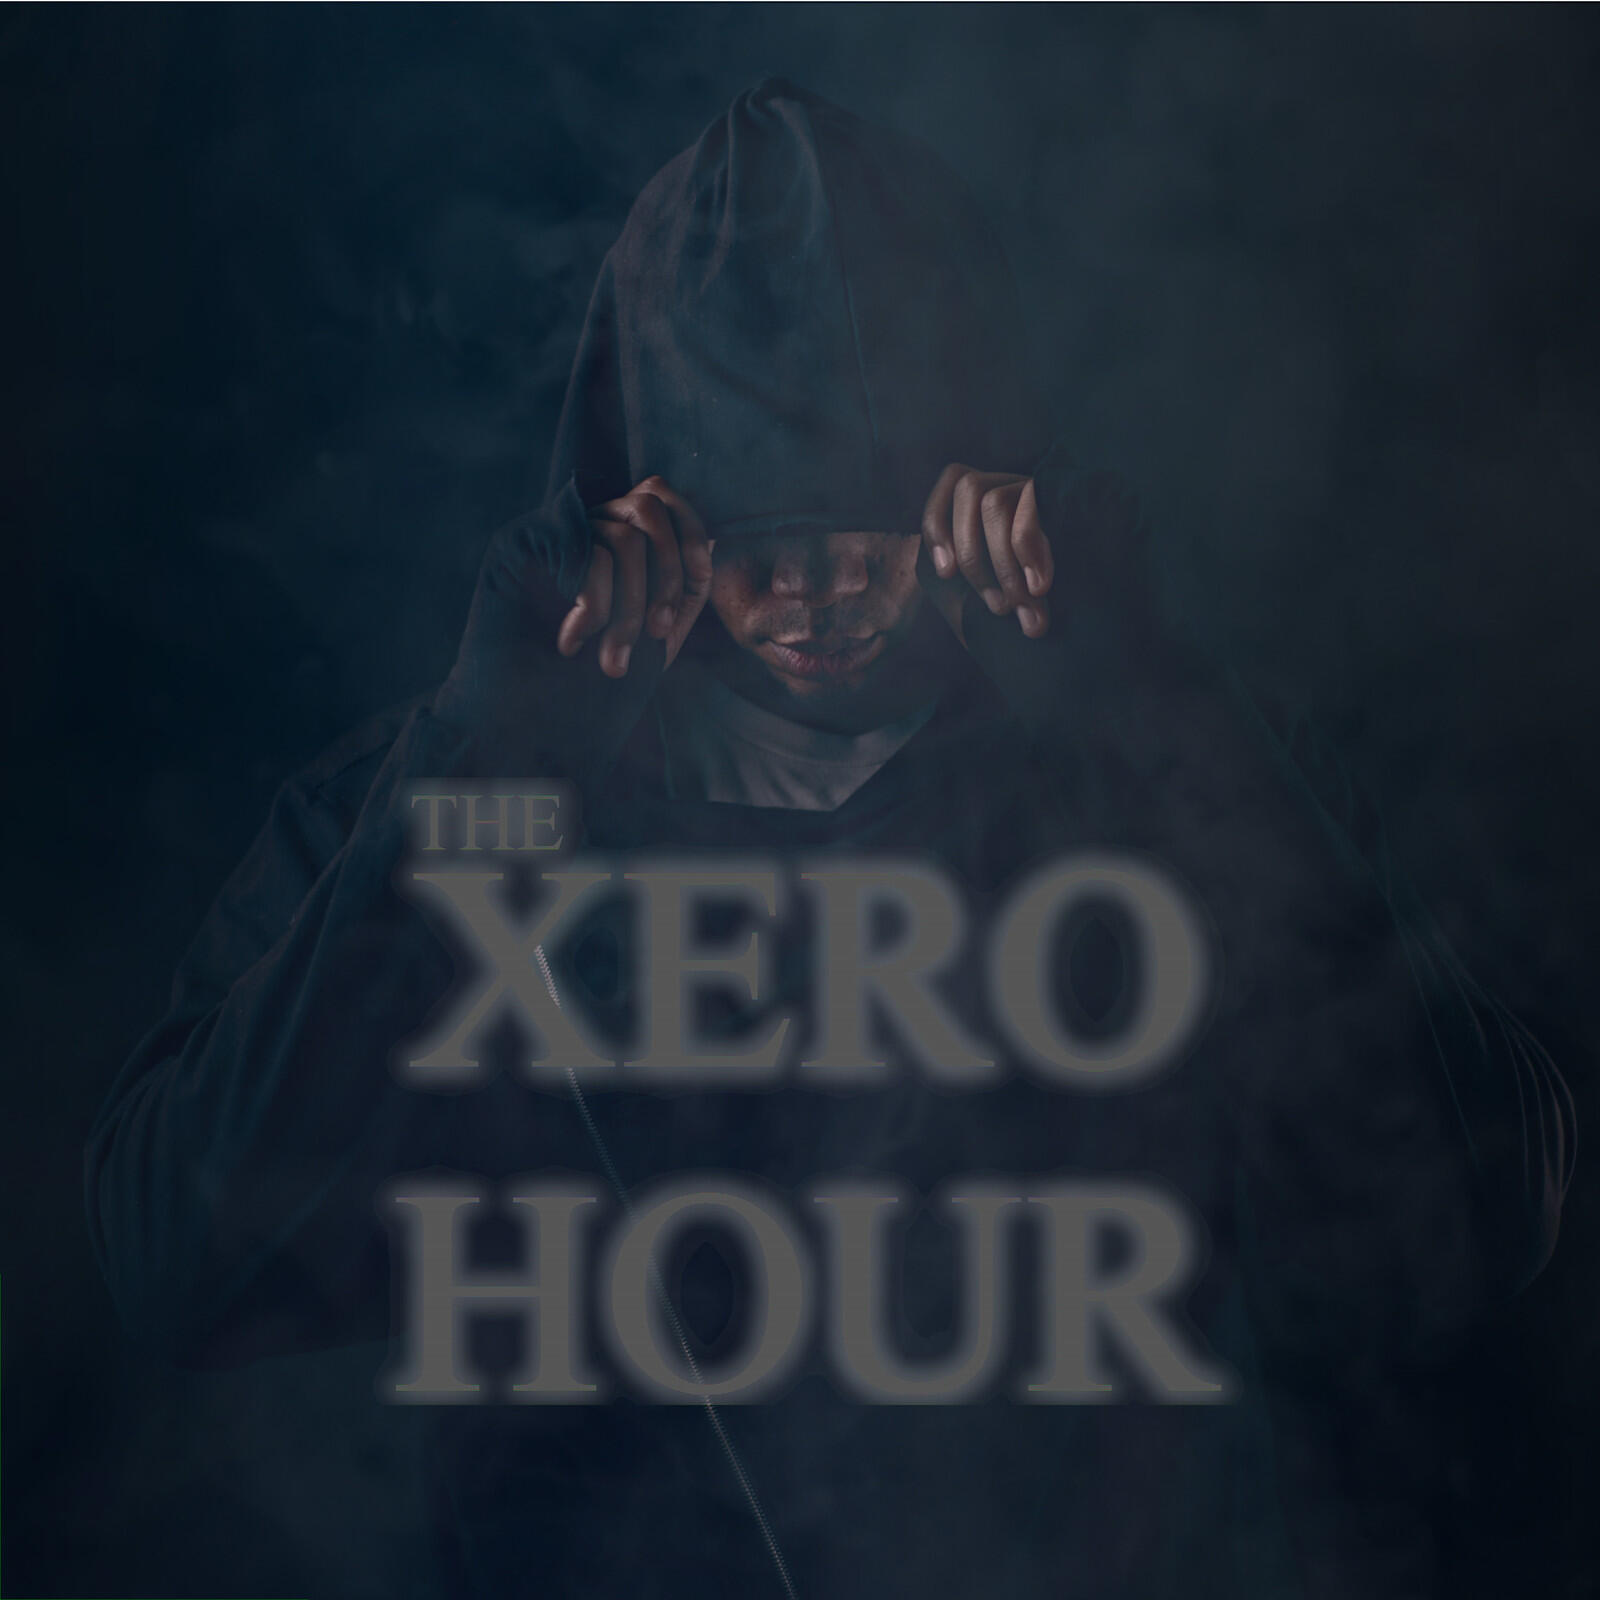 67: Xero Hour Podcast 67 - Is the Sandwhich Christian Enough?